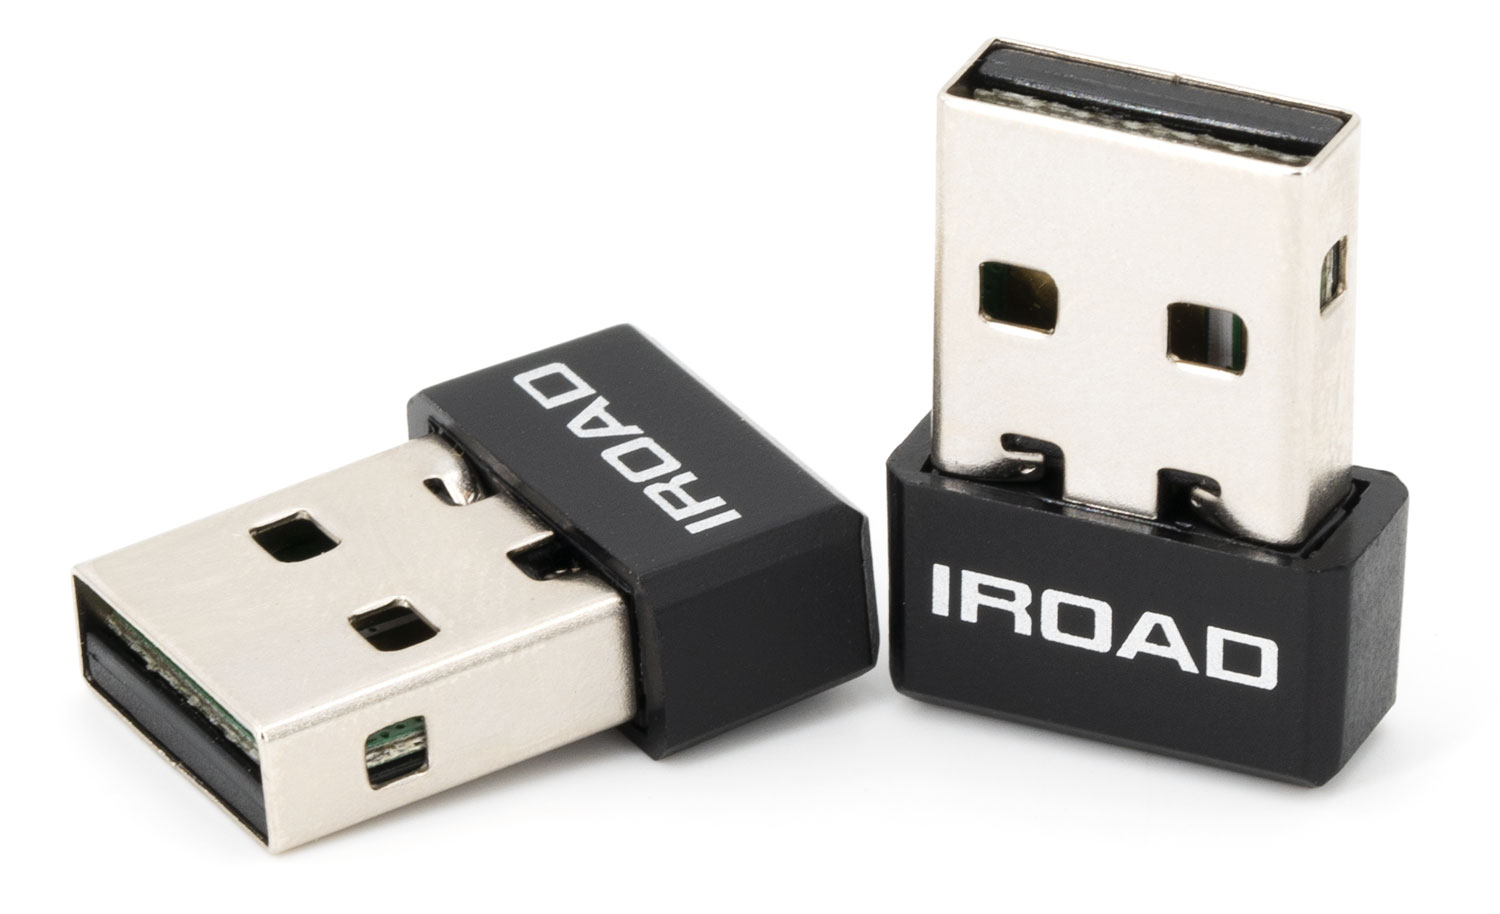 iroad-wifi-dongle_3.jpg